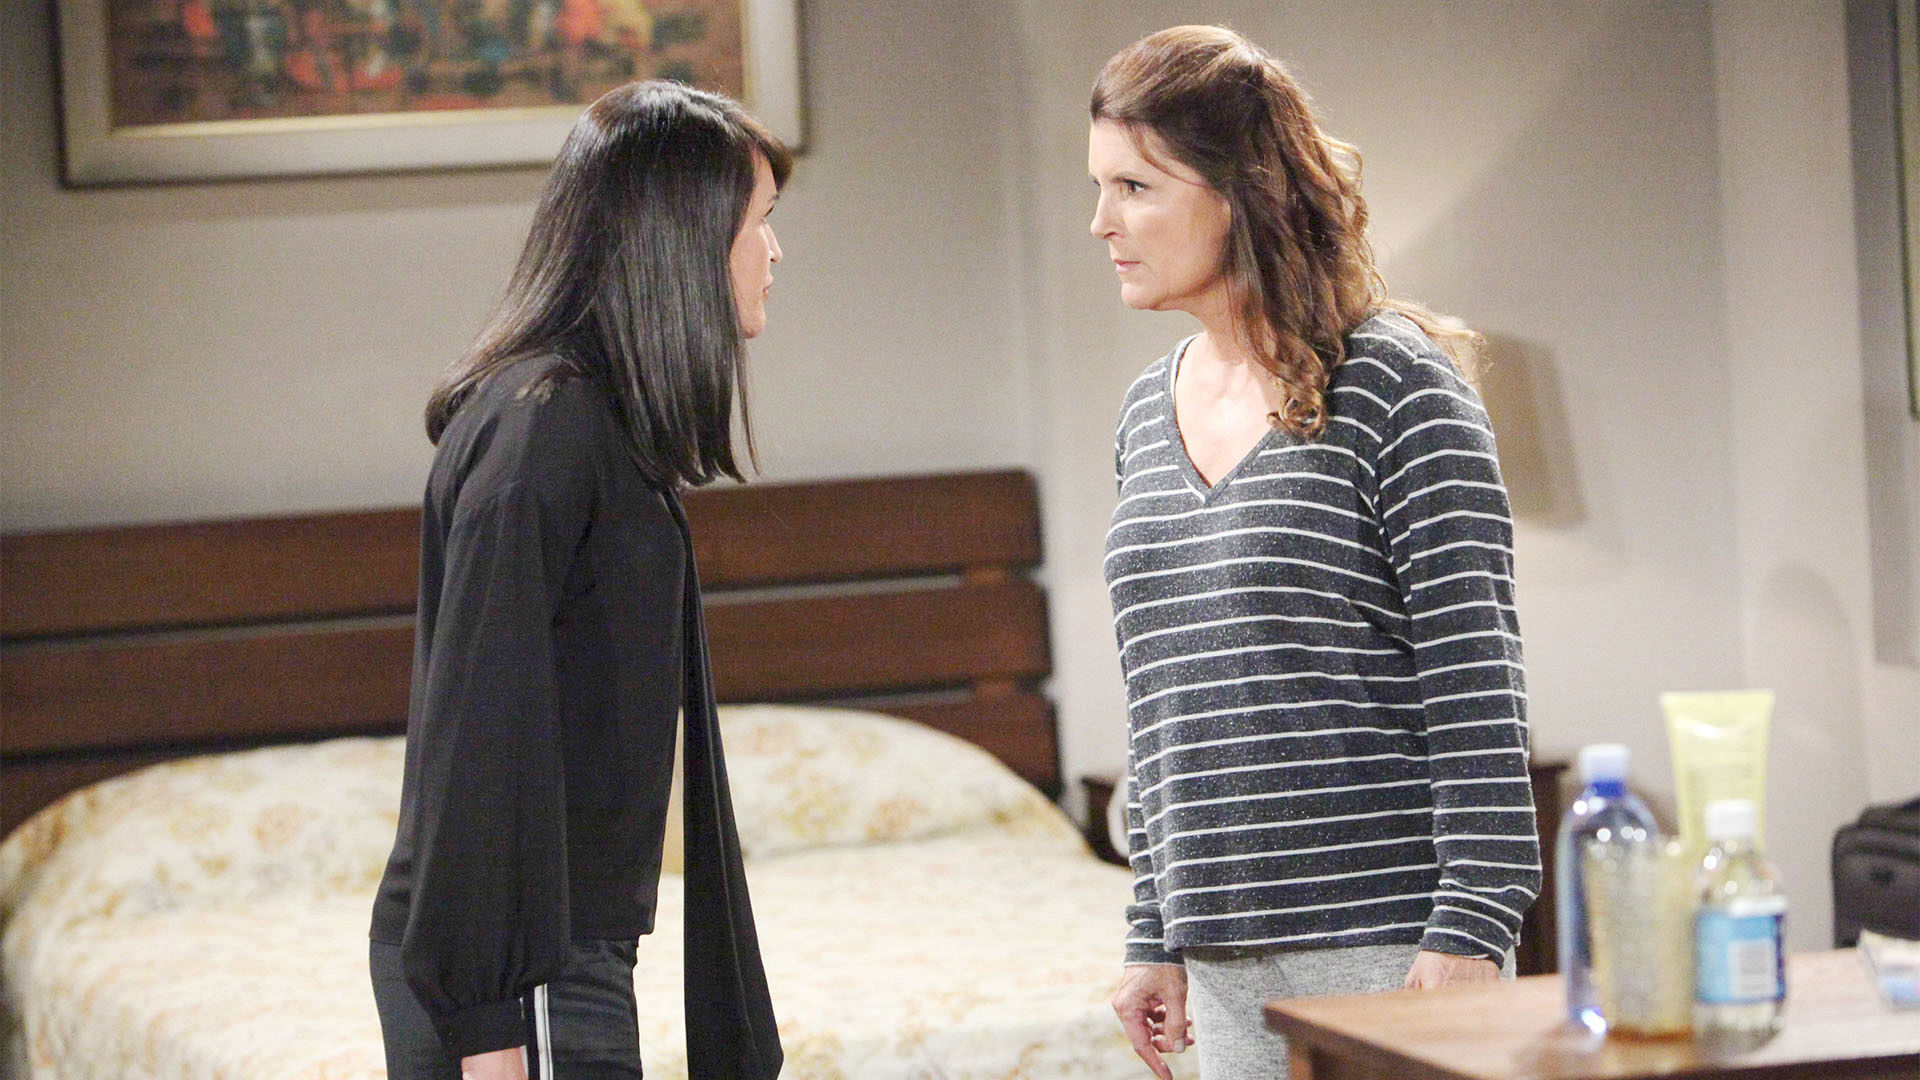 Unable to help themselves, Quinn's visit to Sheila turns into a no-holds barred catfight.